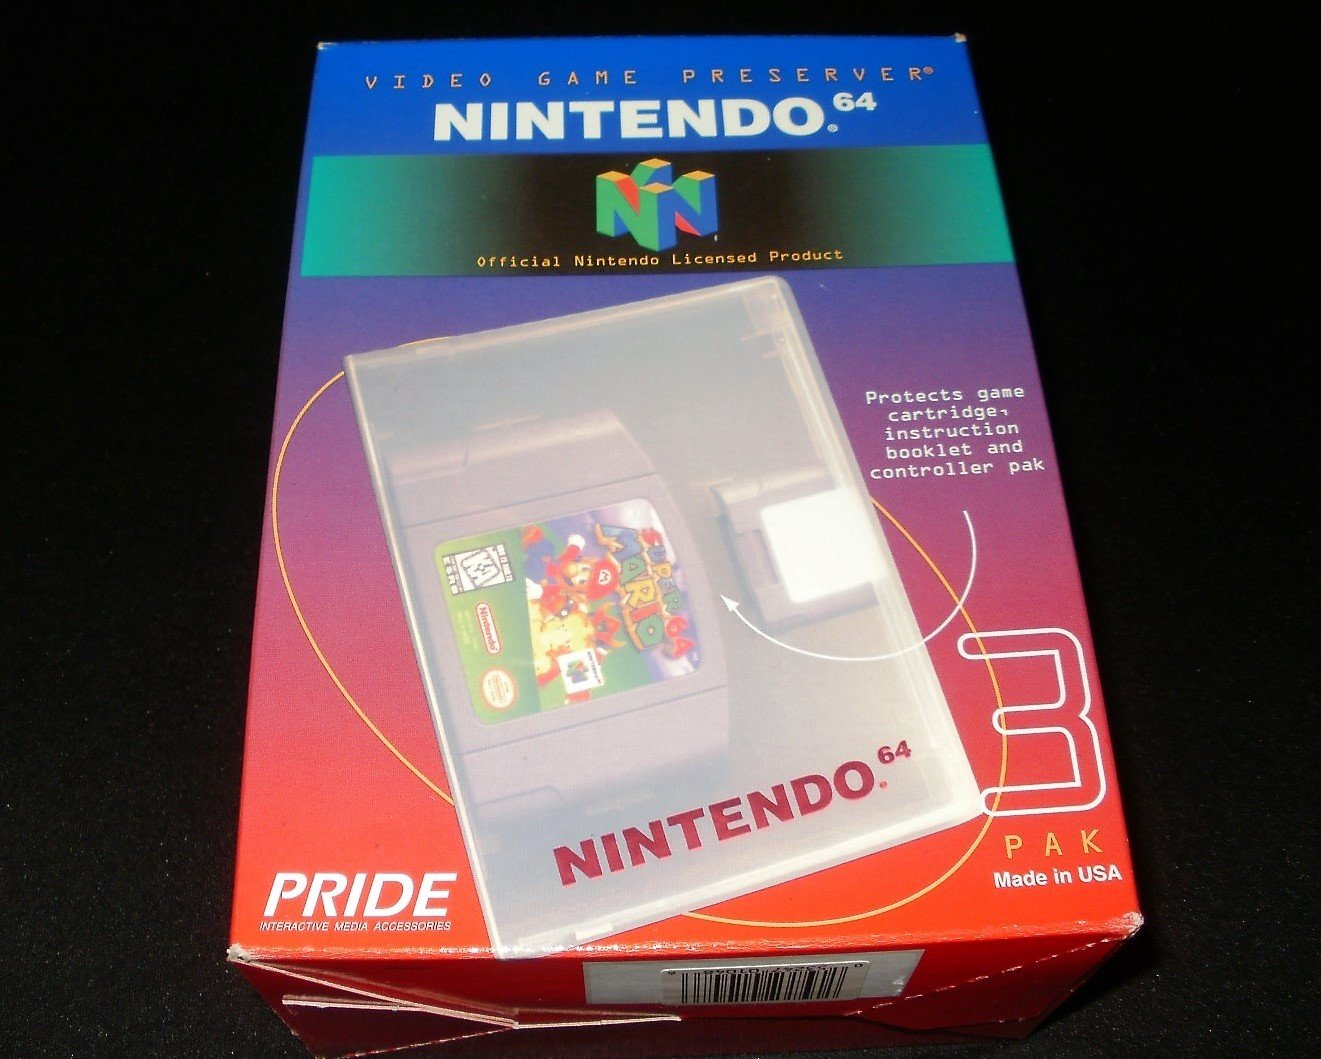 Video Game Preserver 3 Pak - N64 Nintendo - Officially Licensed Product - Blue - Rare